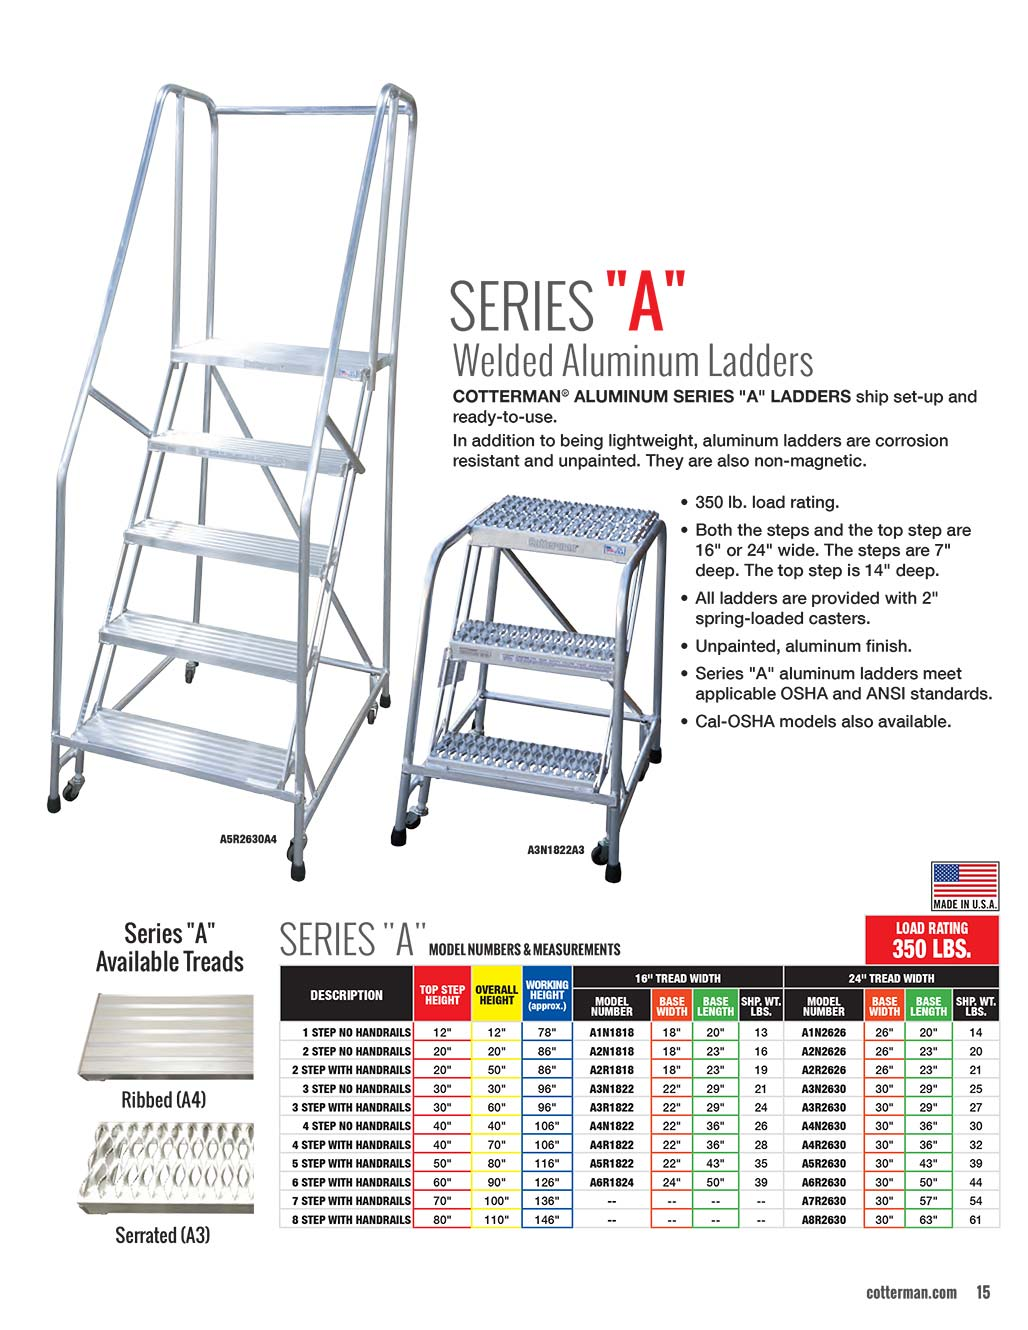 Cotterman Series A Rolling Ladder Technical Specs